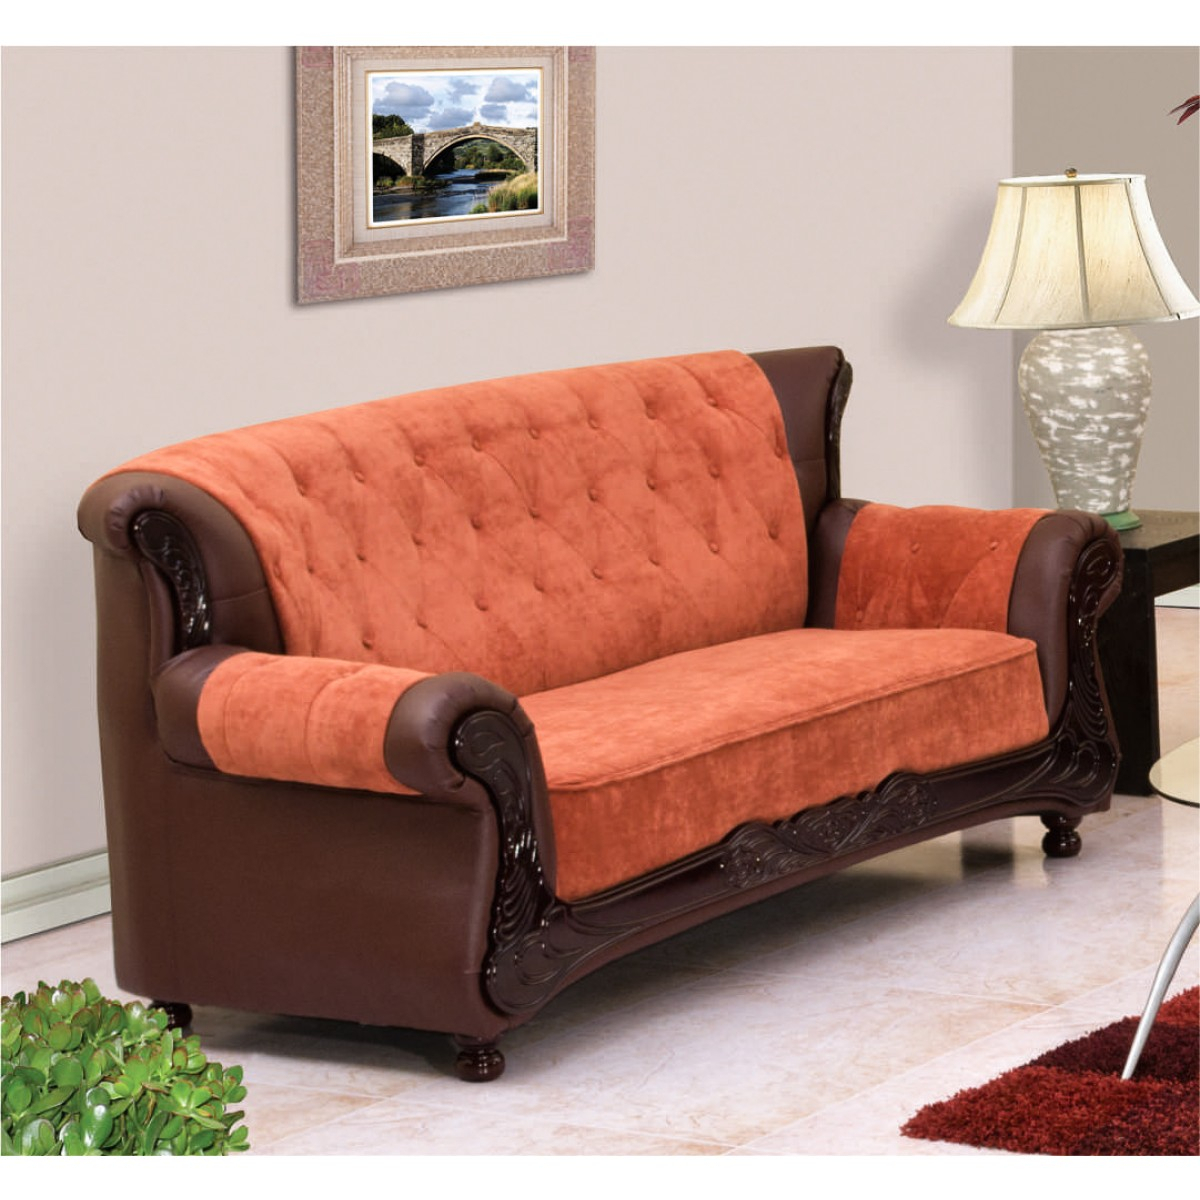 Grace Sofa (3 + 2 + 1 Seater) | Damro Within Grace Sofa Chairs (Image 12 of 20)